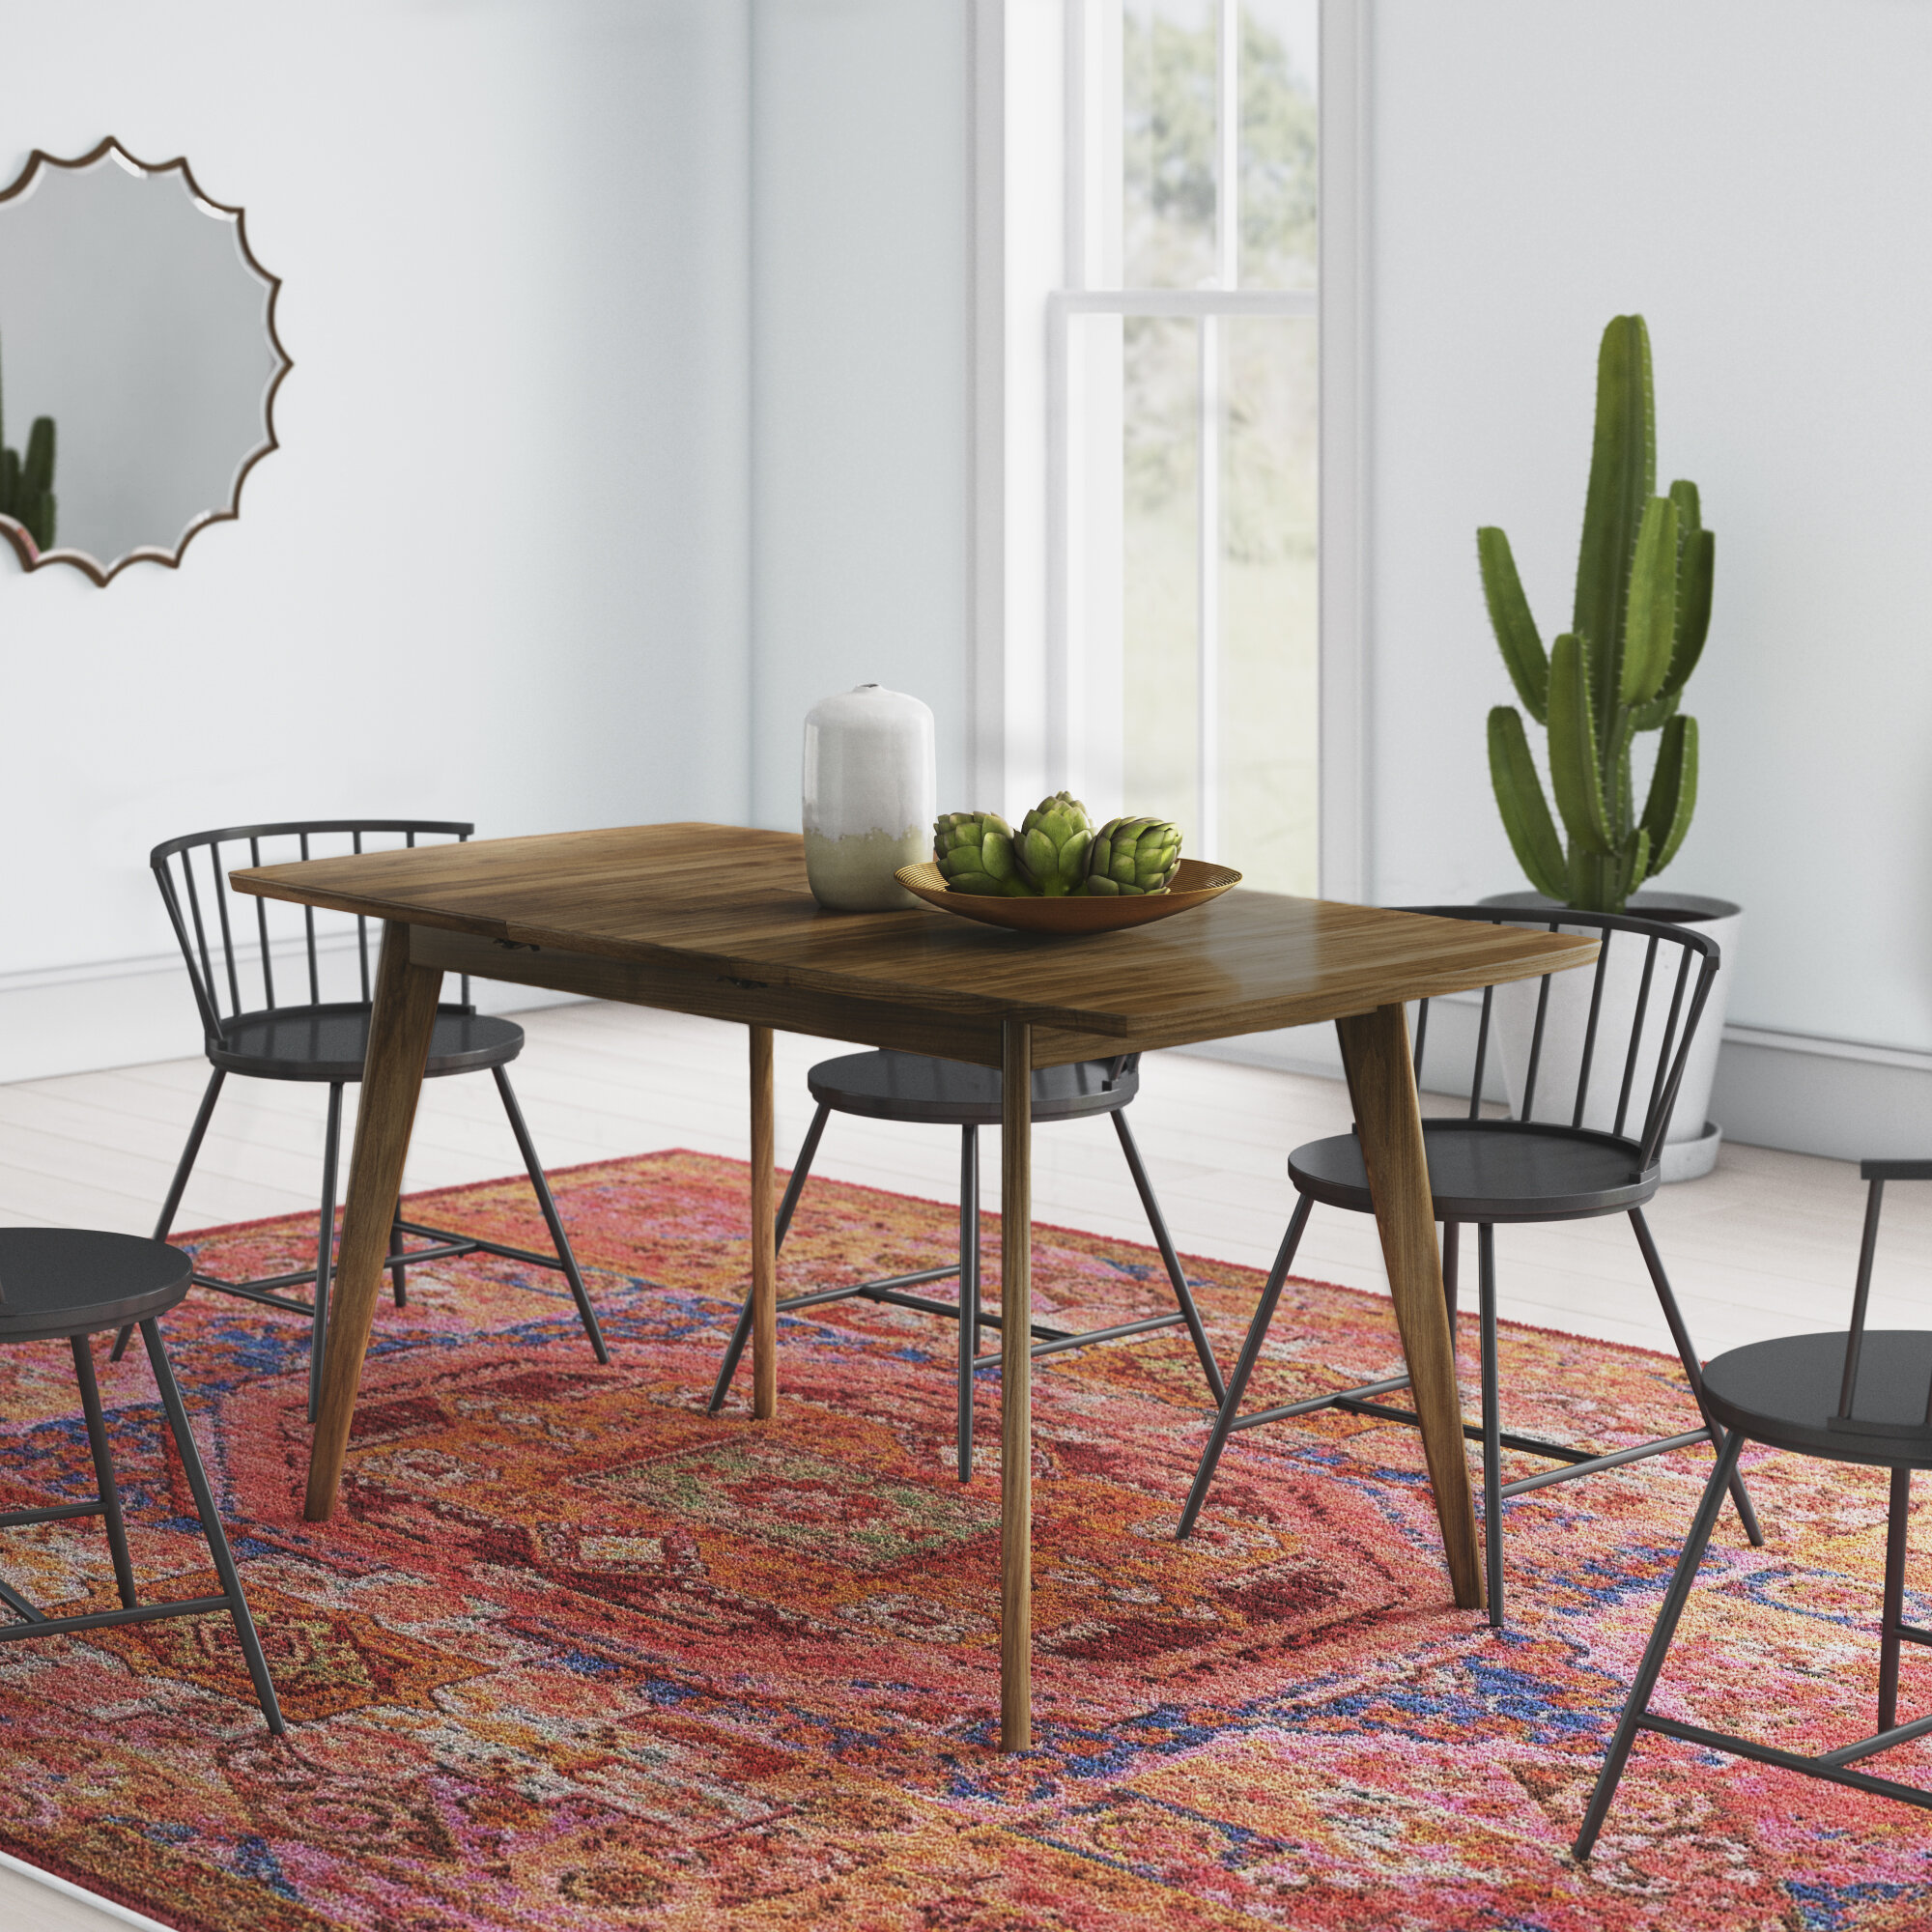 Butterfly Leaf Kitchen & Dining Tables You'll Love in 9   Wayfair